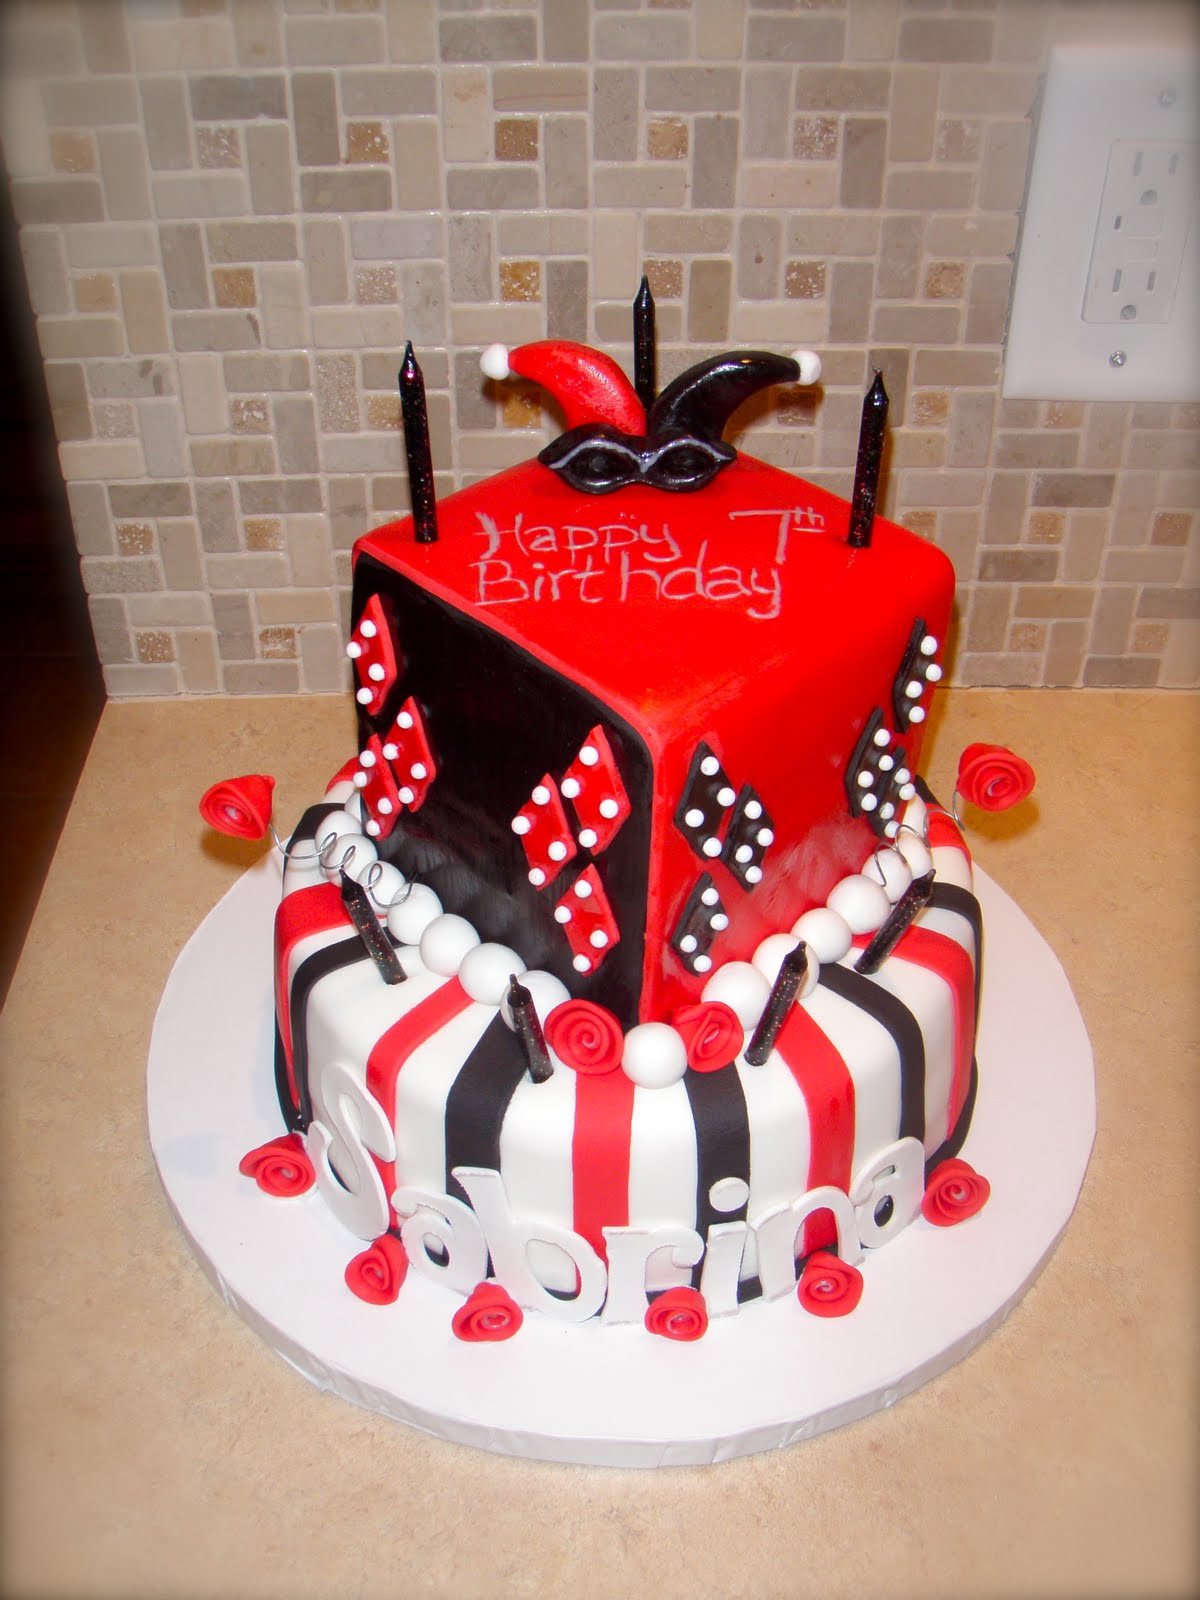 Best ideas about Harley Quinn Birthday Cake . Save or Pin Creative Cakes Now.